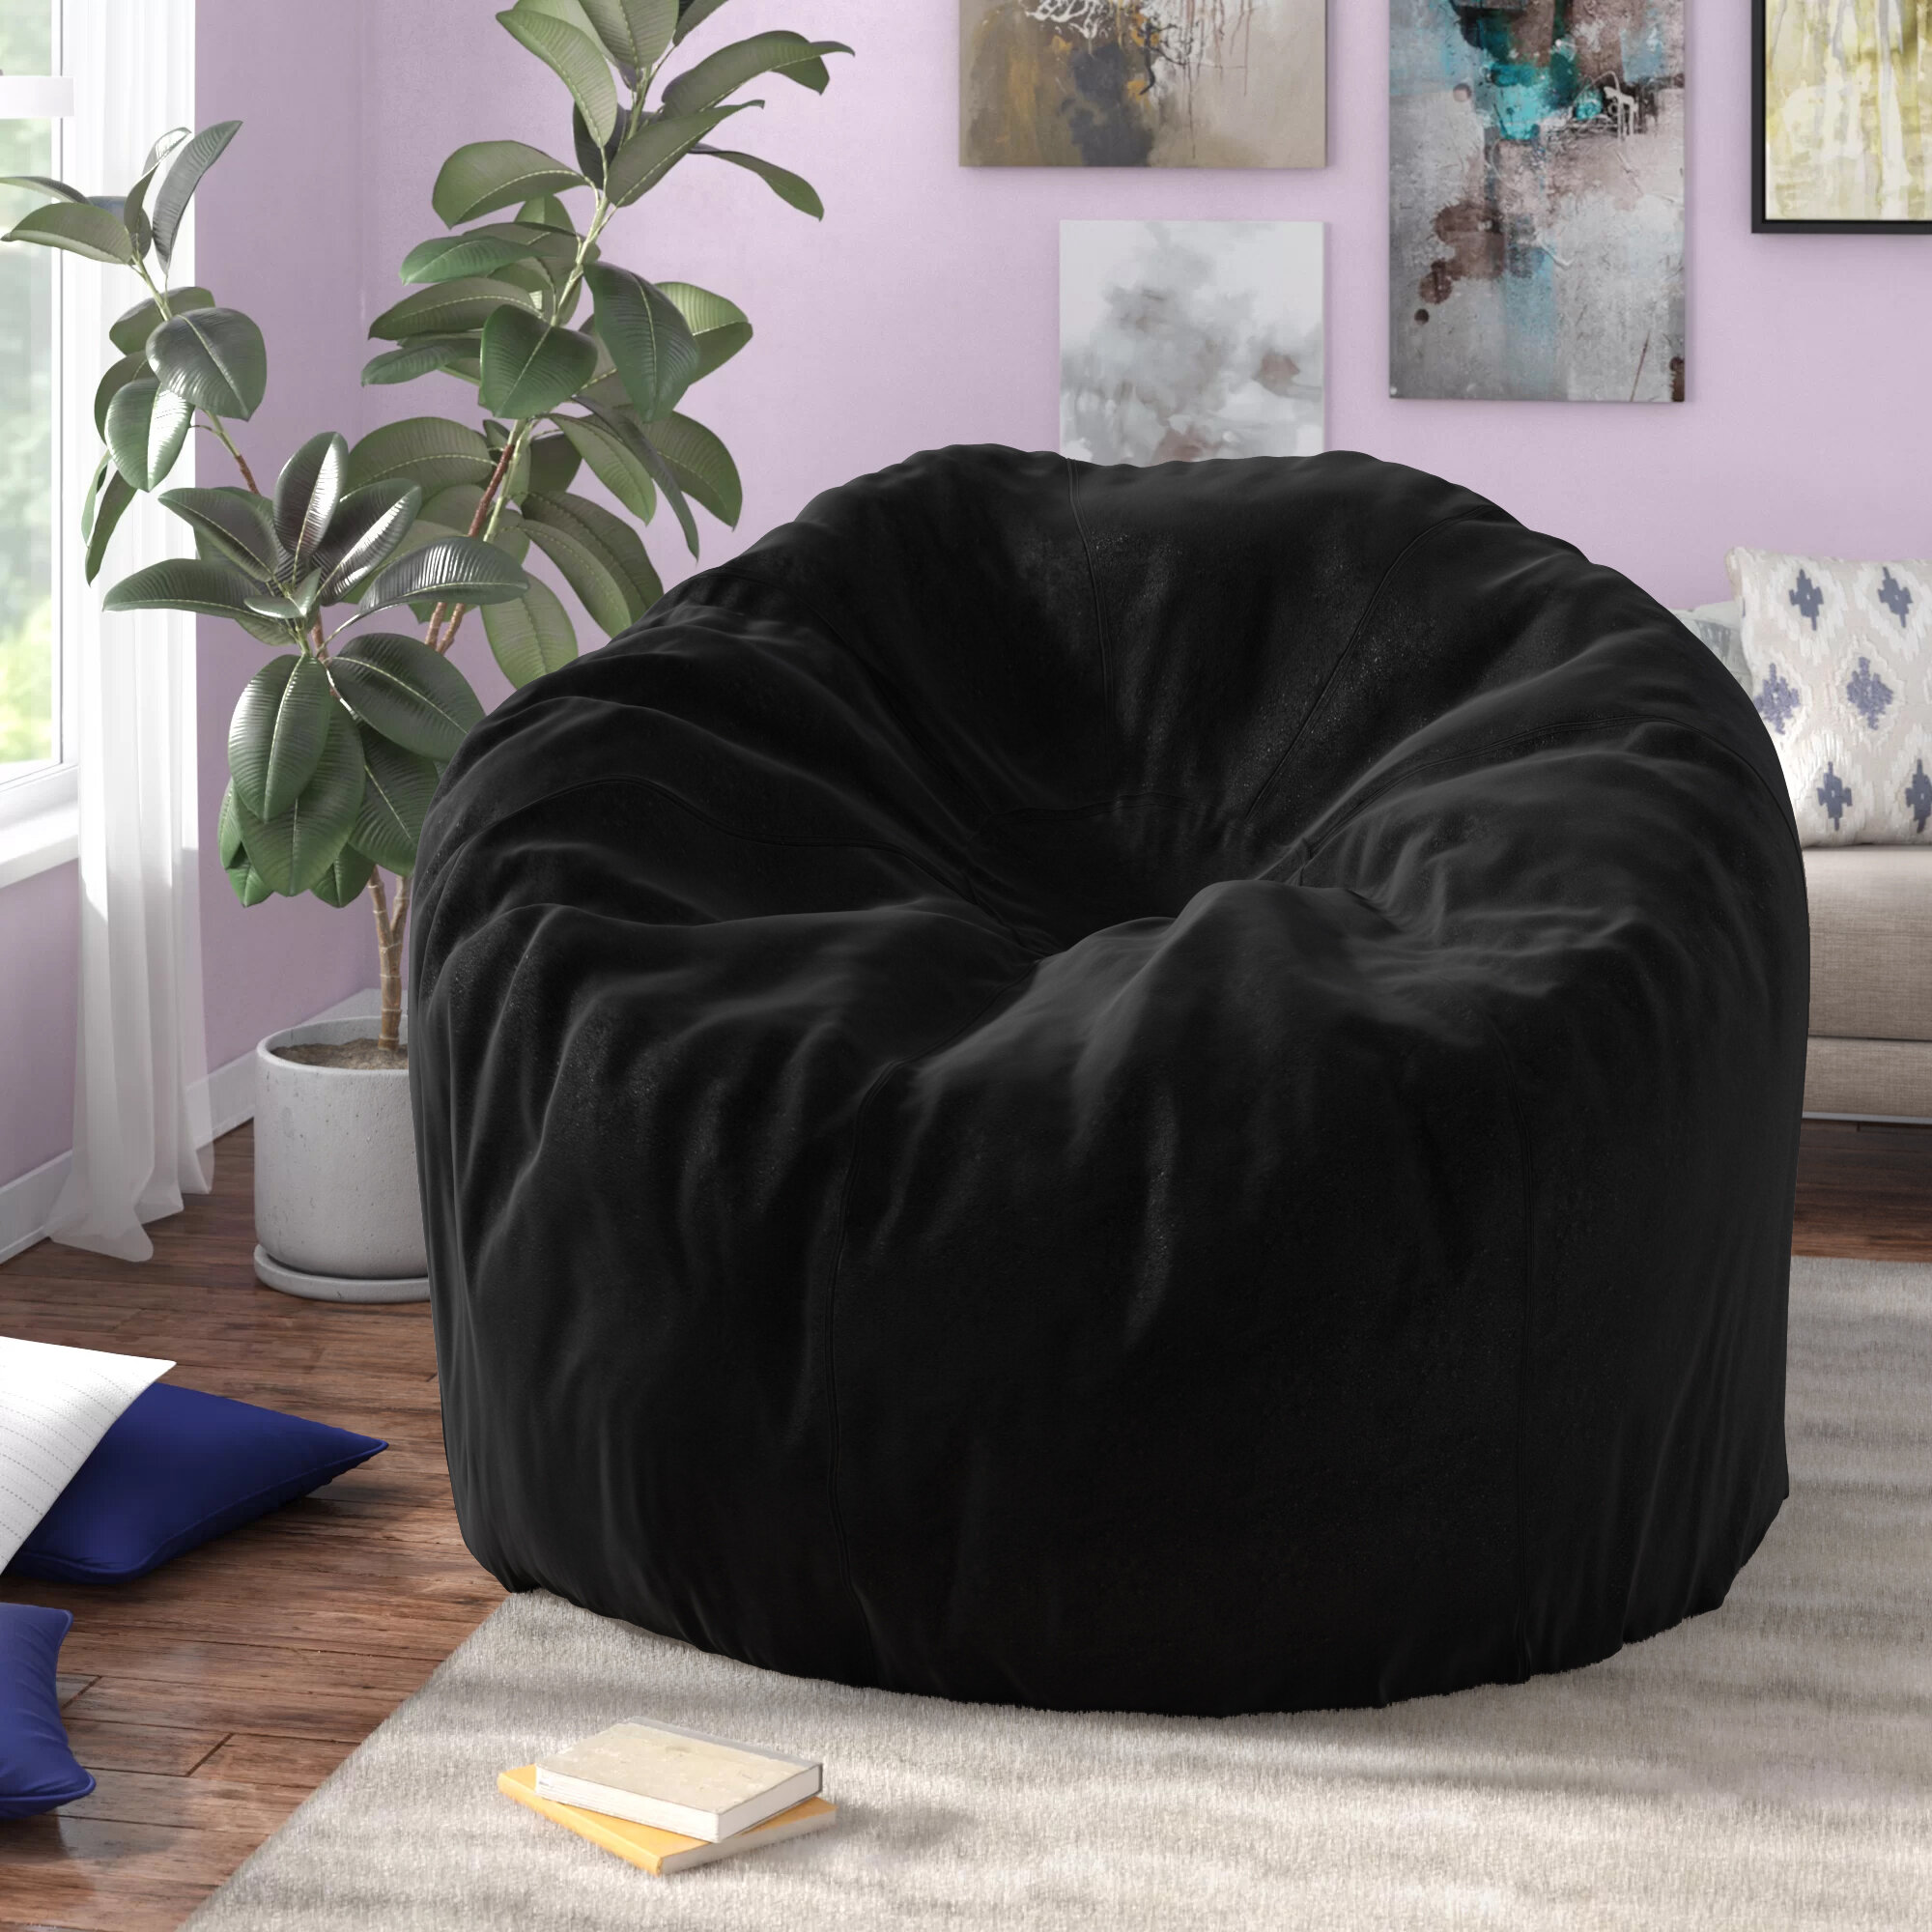 Outstanding Extra Large Bean Bag Chair Gmtry Best Dining Table And Chair Ideas Images Gmtryco